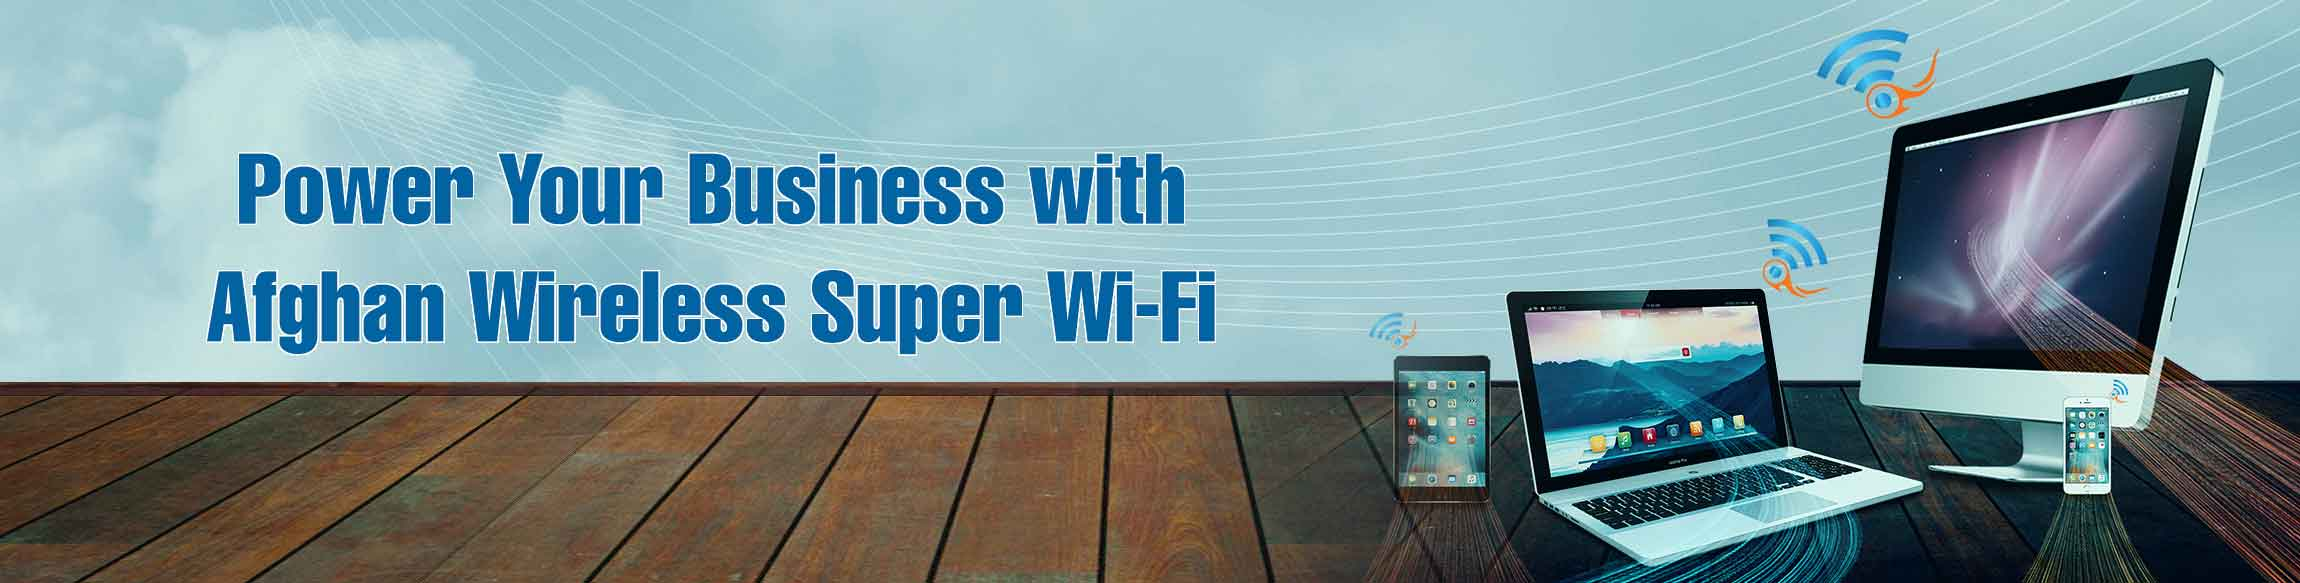 Super-WiFi-English